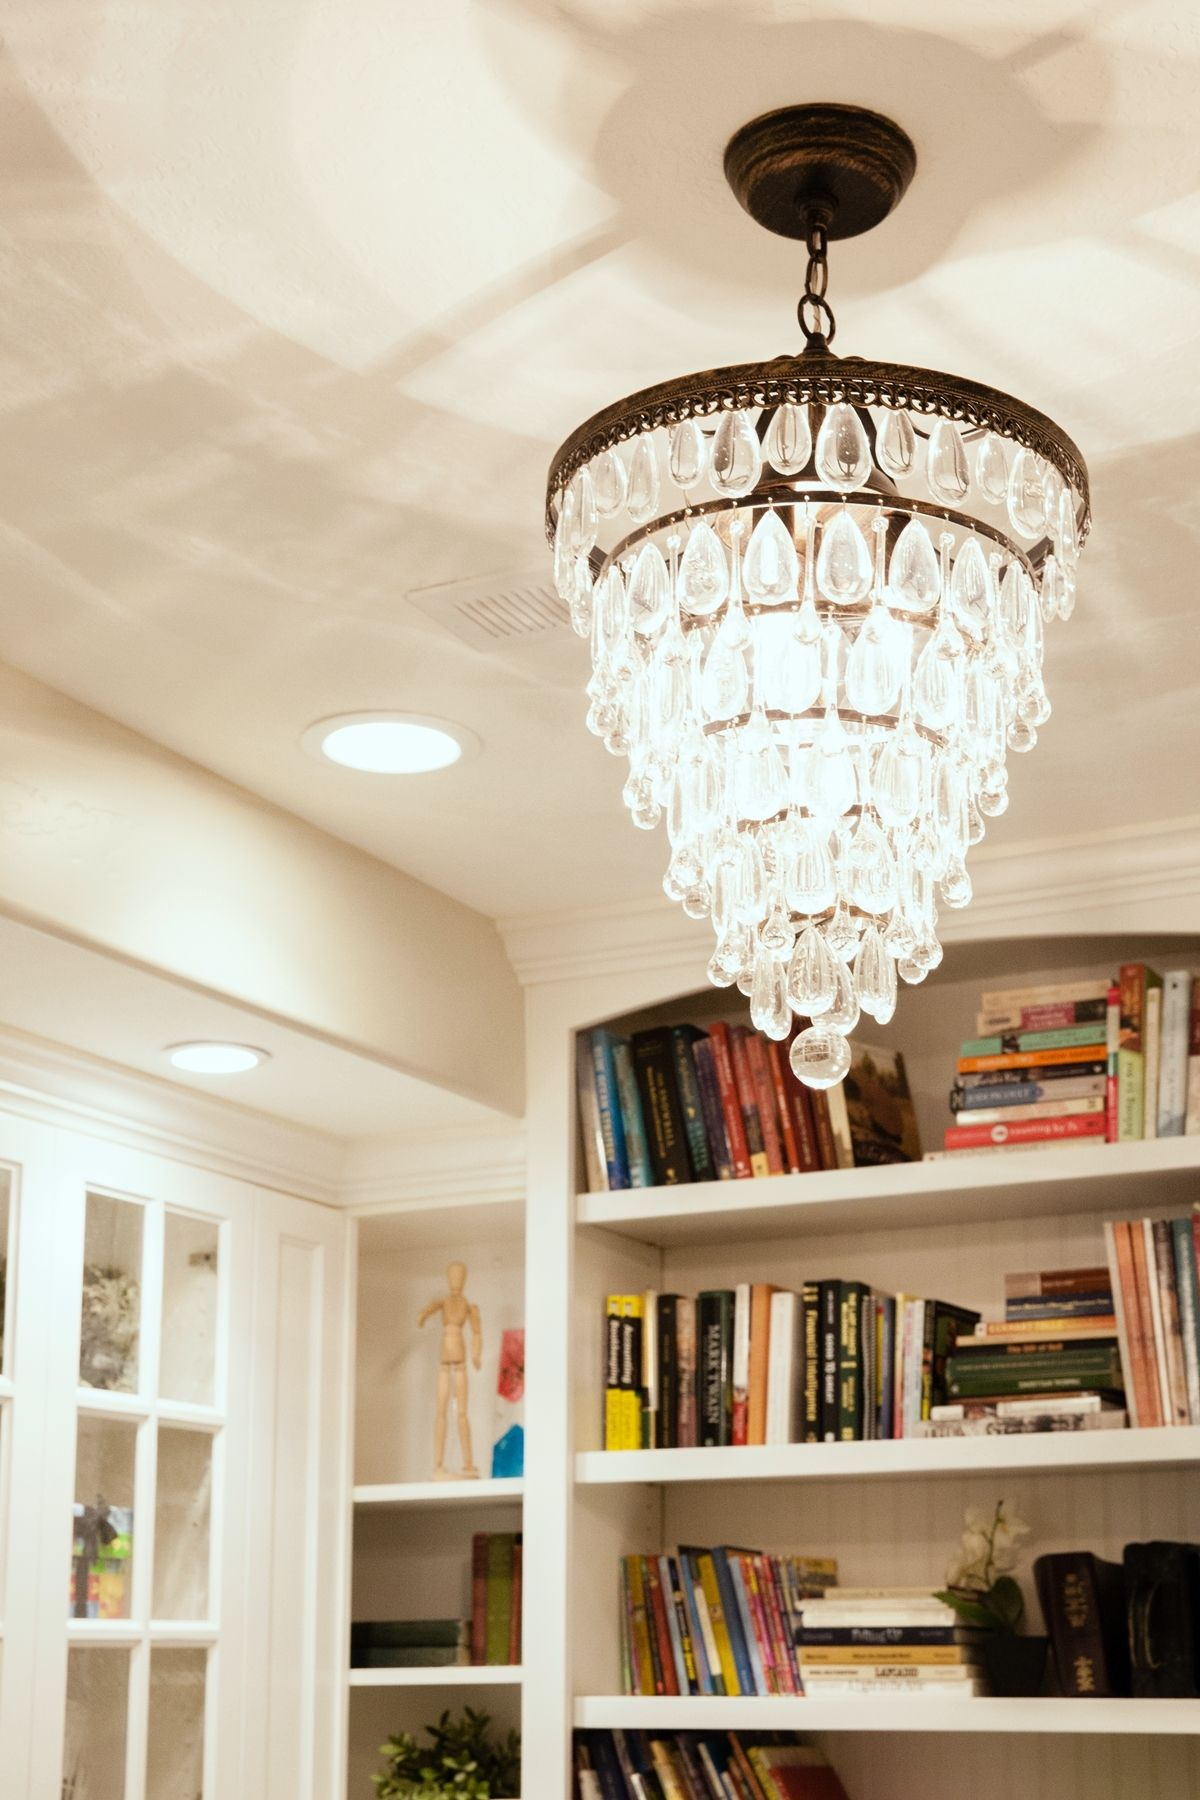 Chandelier sophistication to any family room's décor